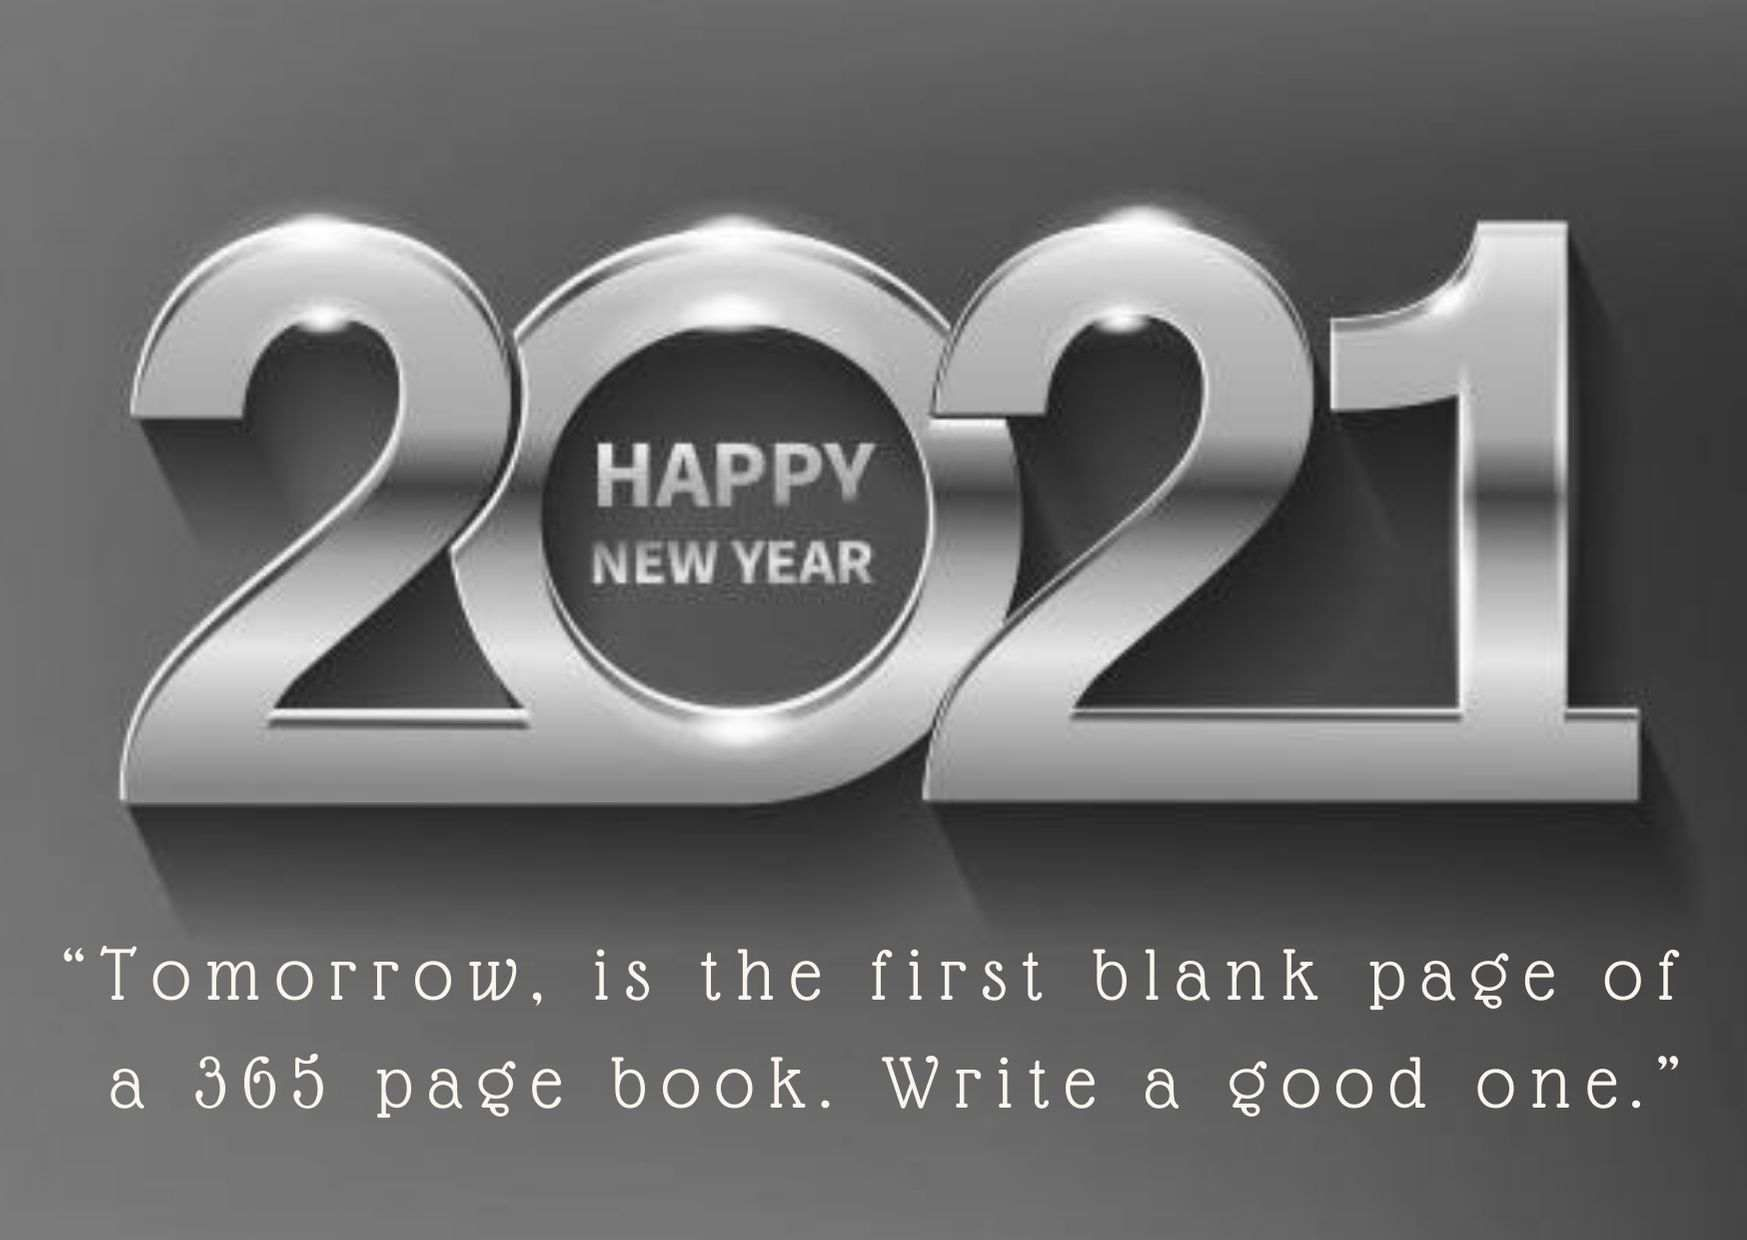 Happy new year quotes 2021 for family and best friend in